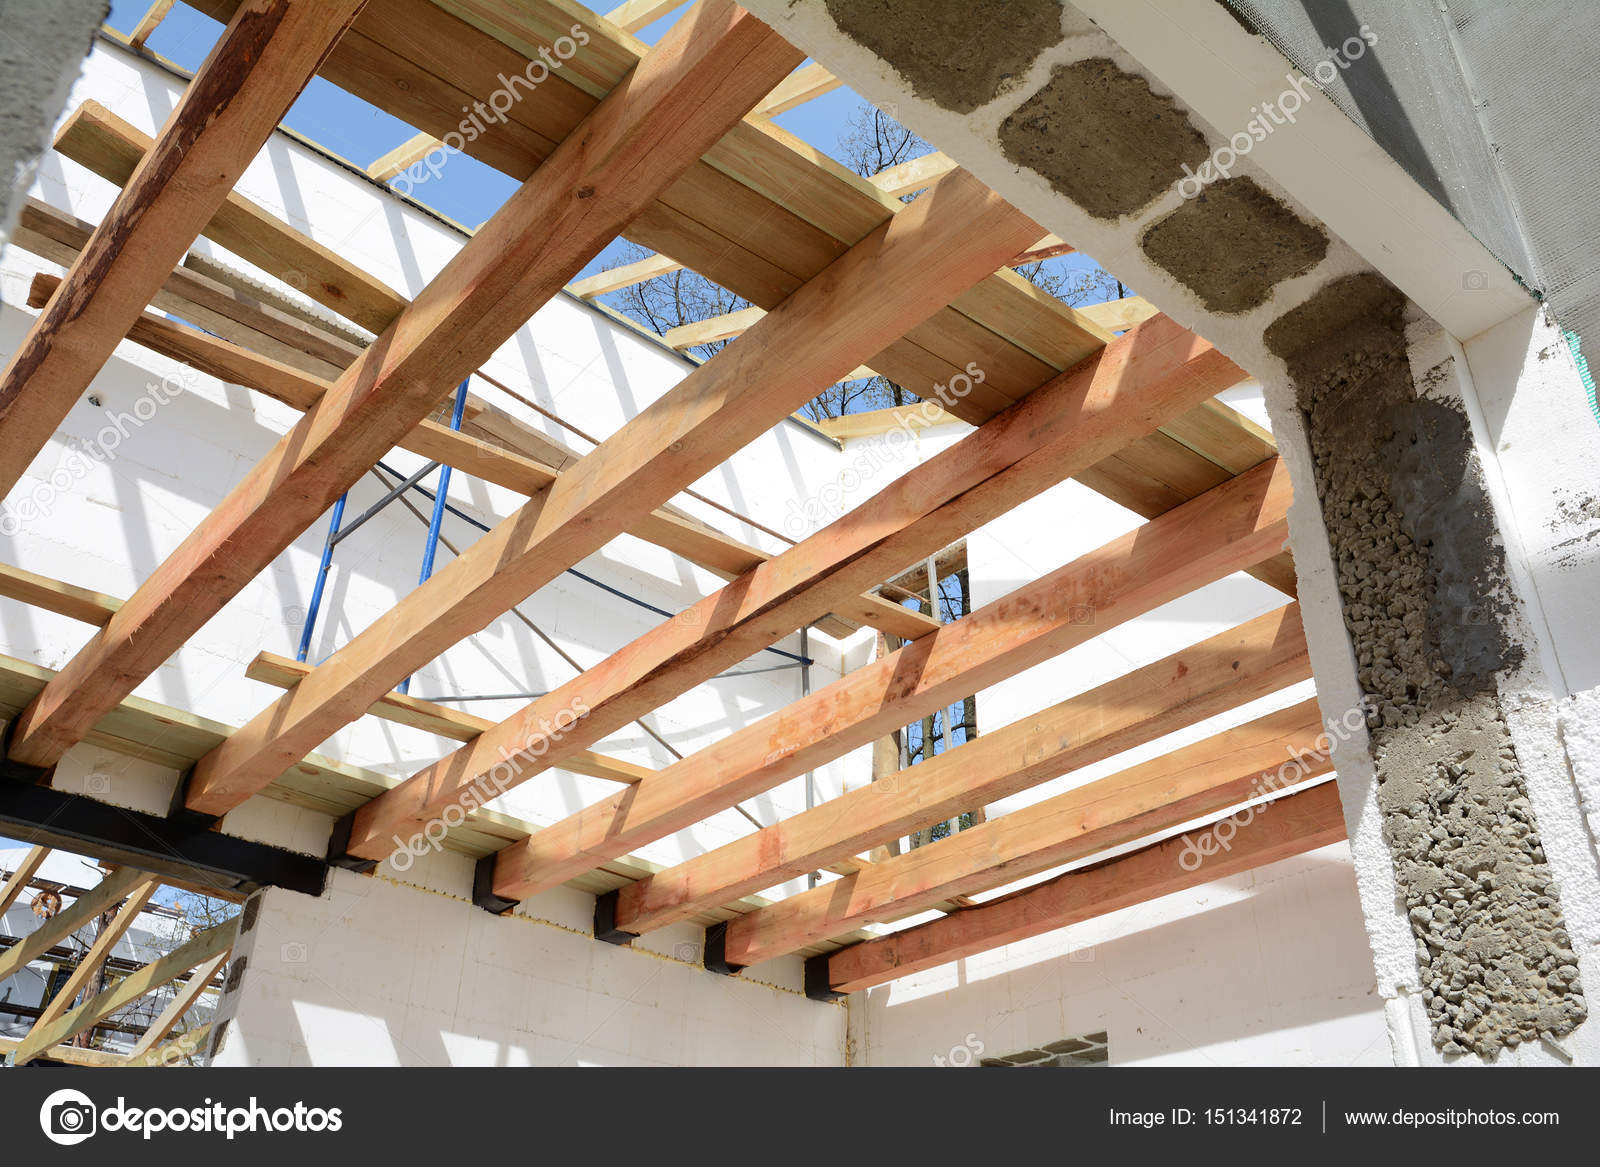 the wooden structure of the building wooden frame building wooden roof construction photo for home house building installation of wooden beams at - Wood Frame Building